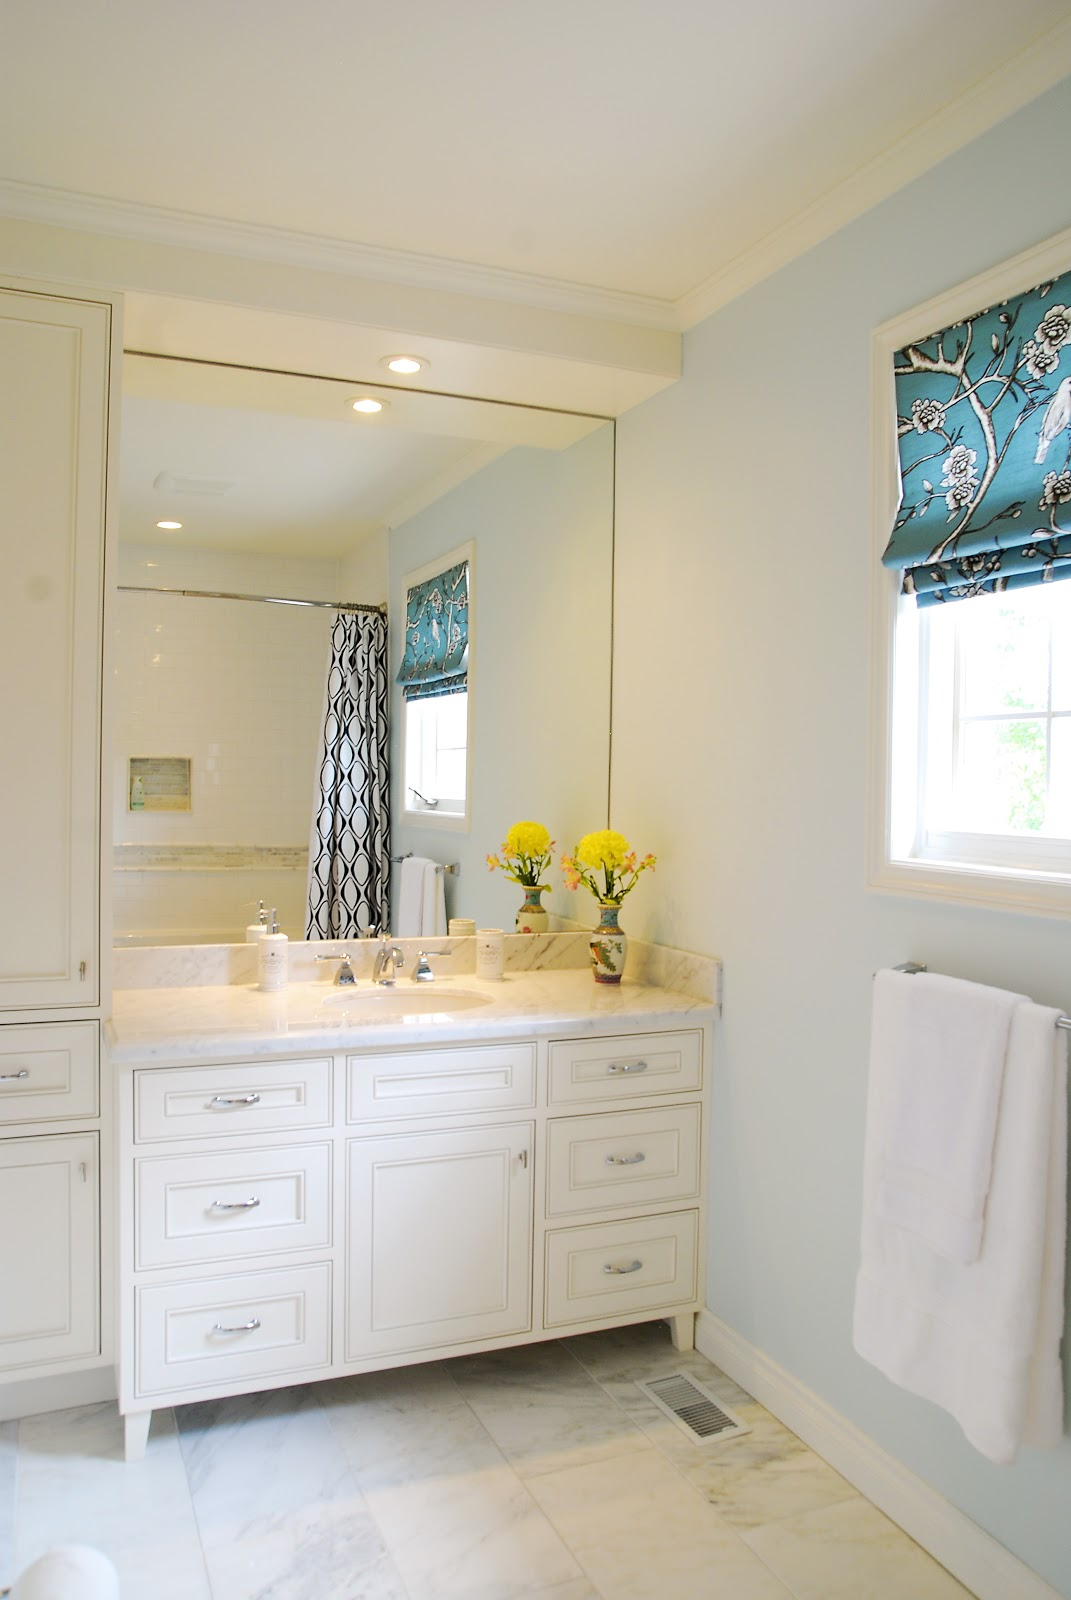 Excellent First Solo Project Guest Bathroom Blah To Beachy Bathroom Ideas